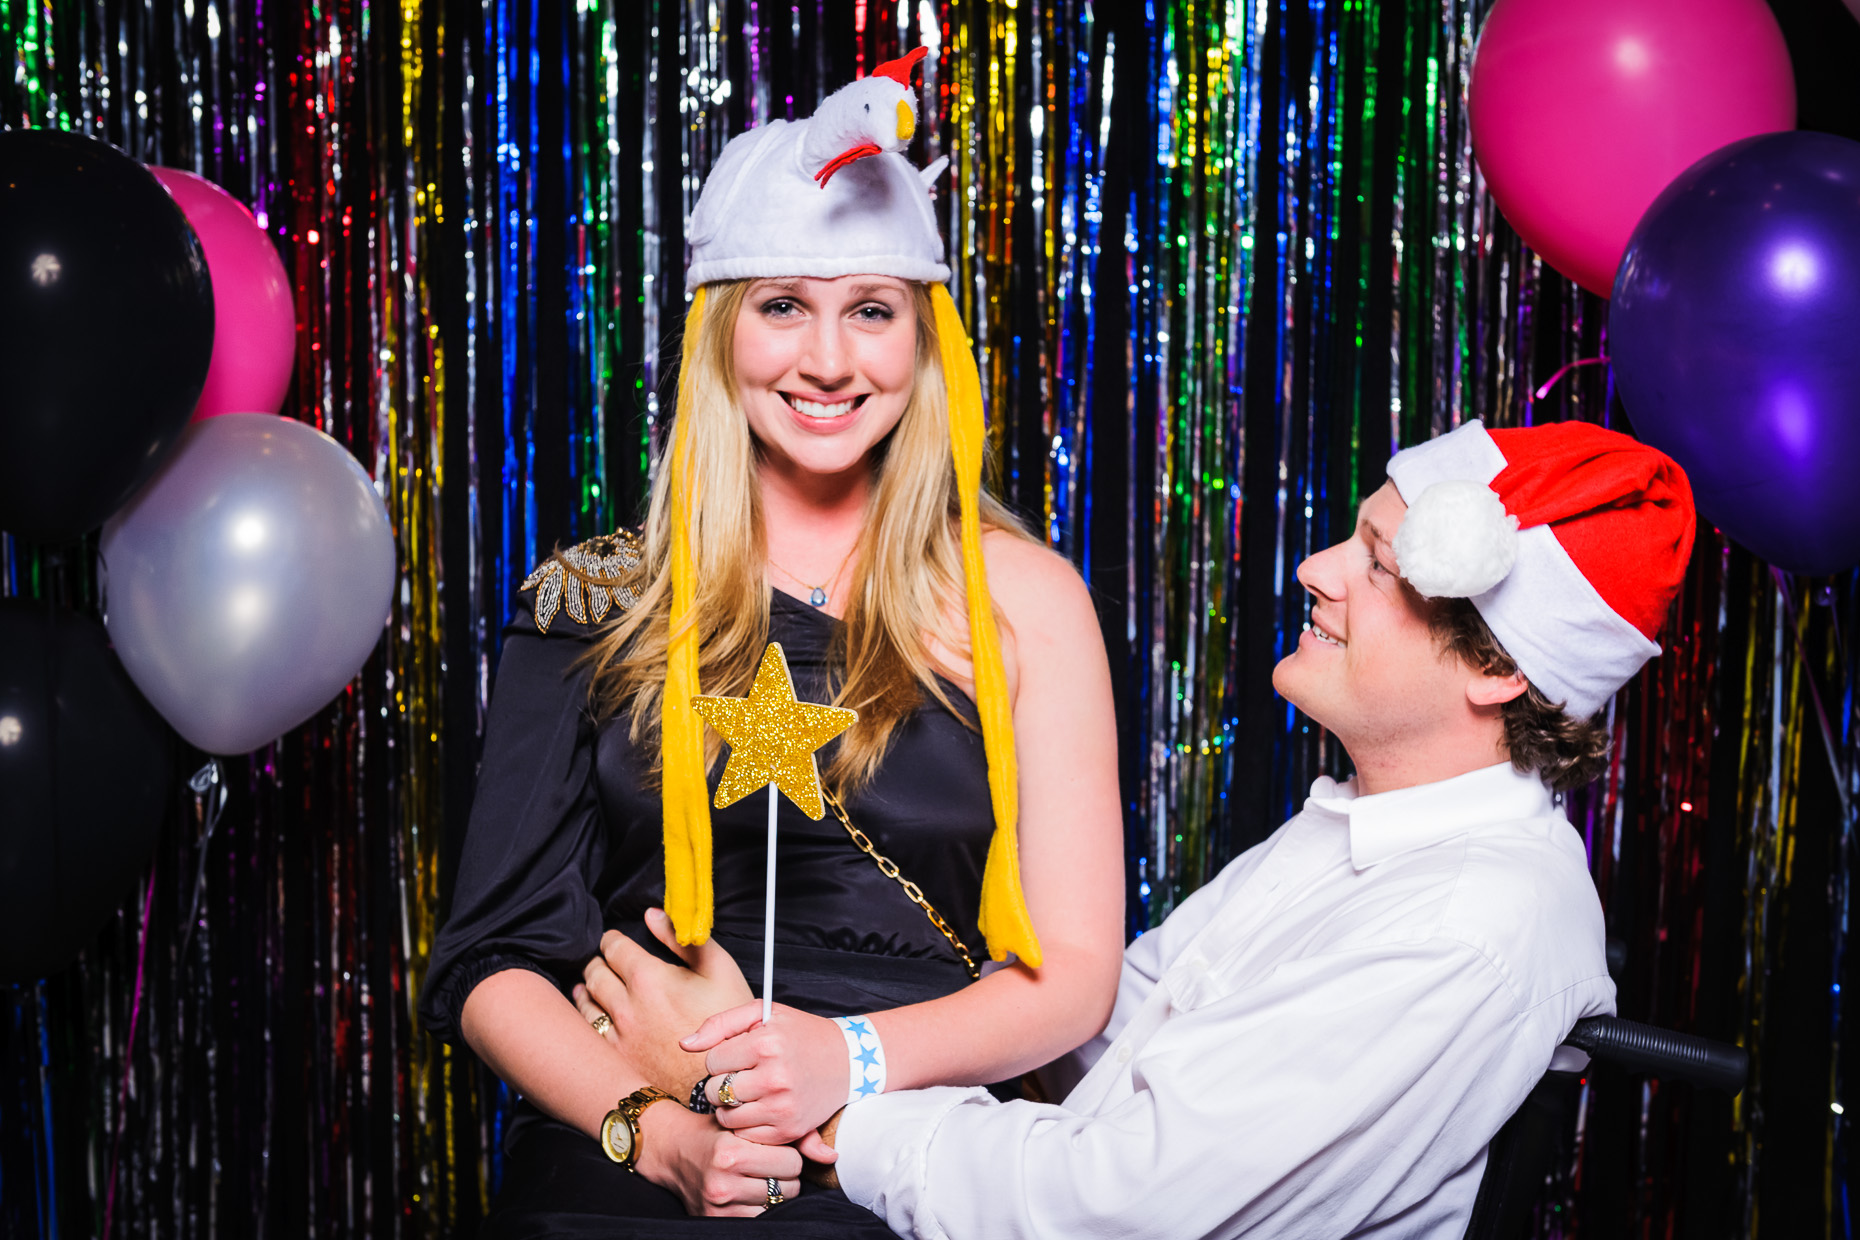 Photobooth-Austin-Event-Commercial-Photographer-Props-Xmas.jpg